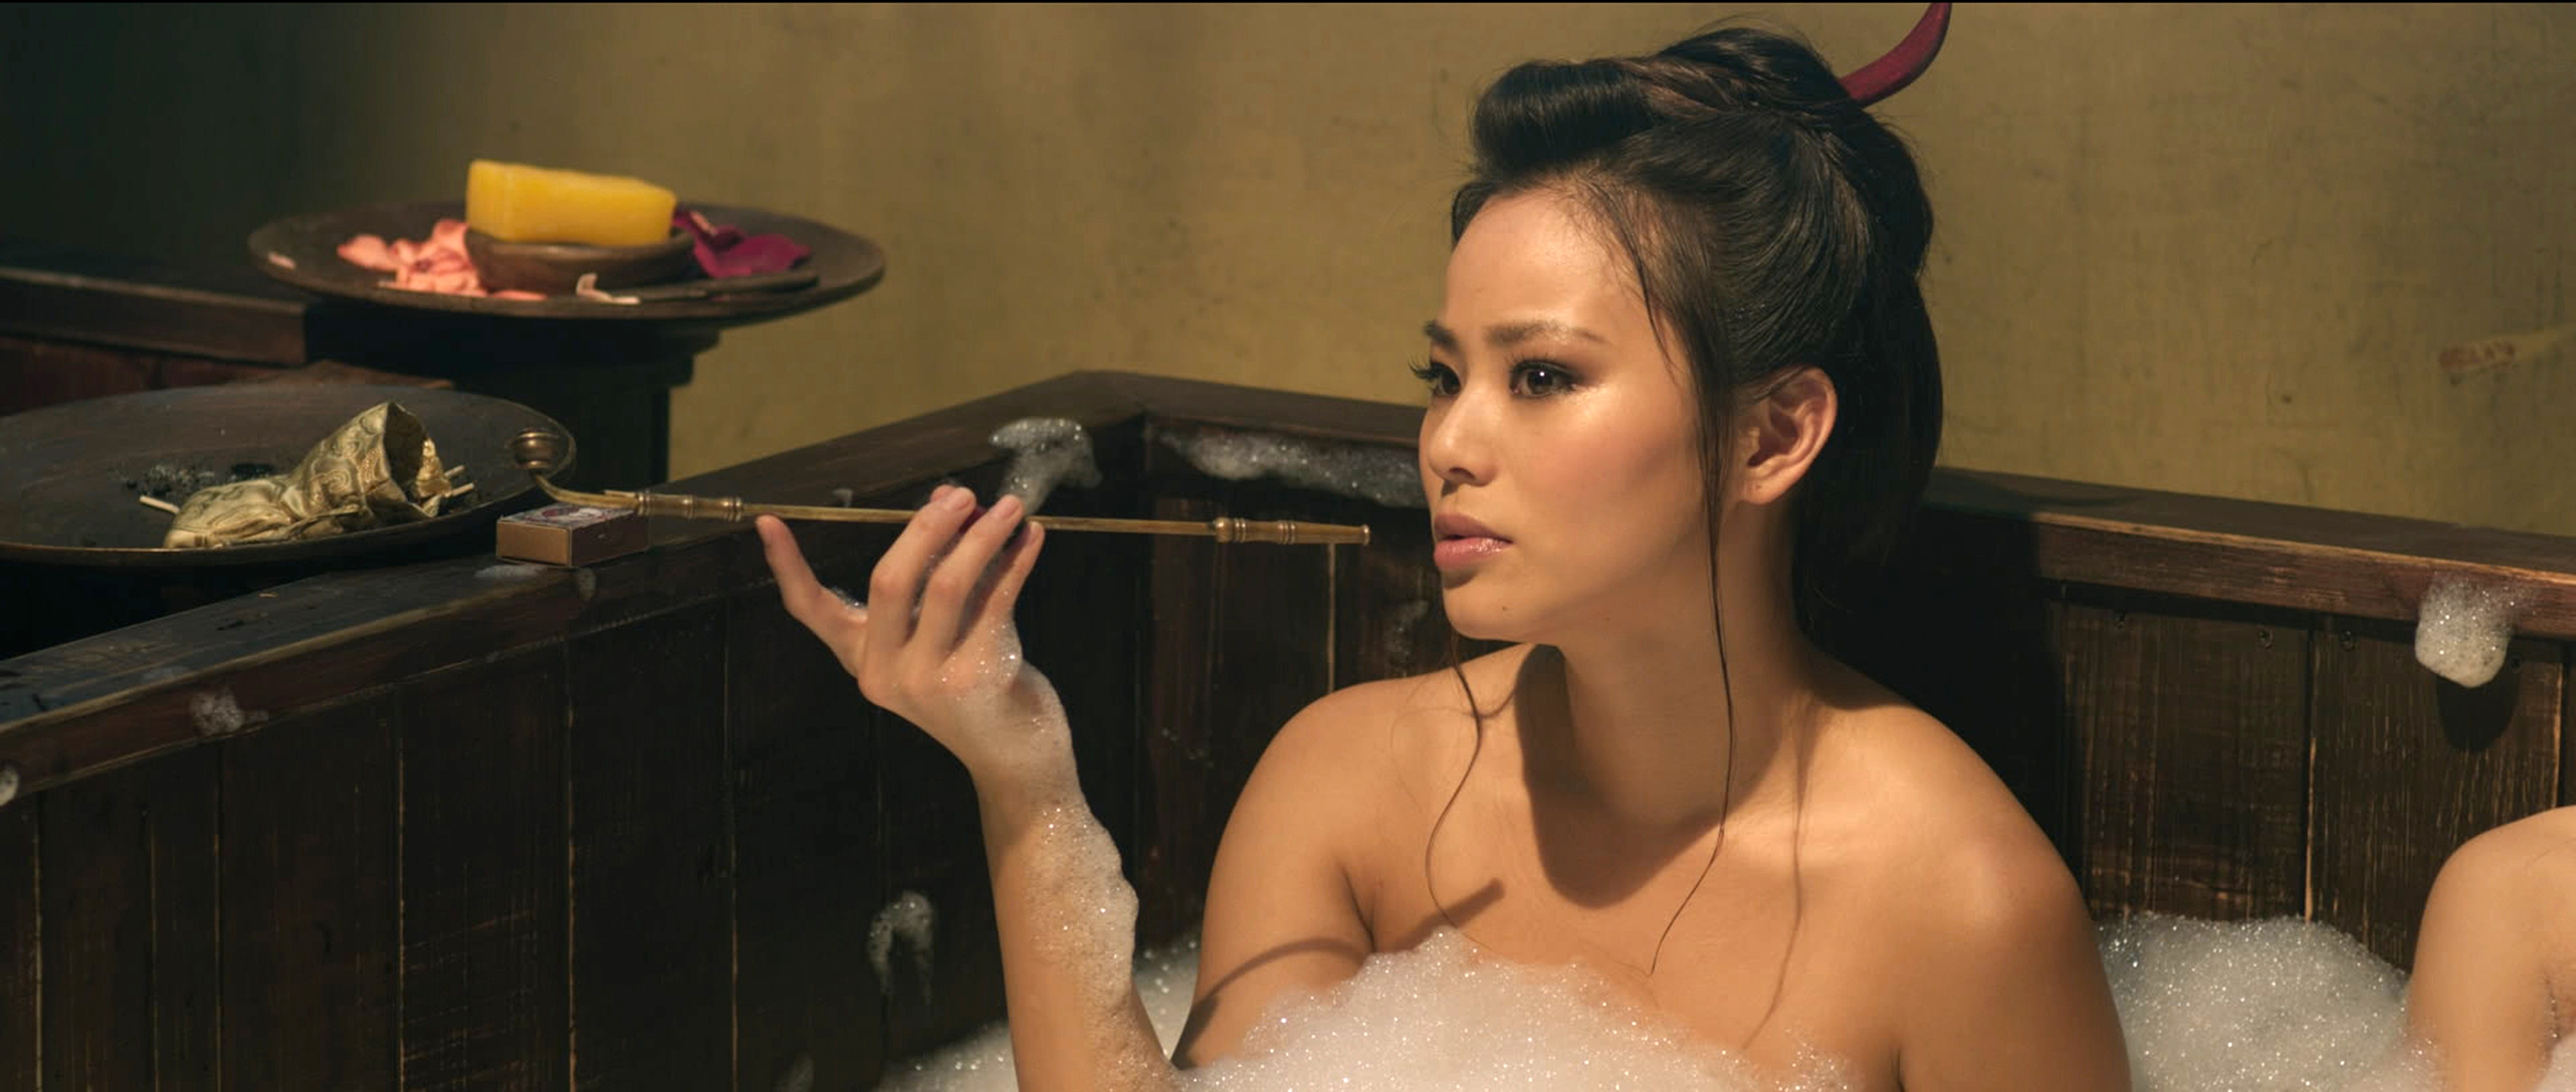 Once Upon A Time Wallpaper Iphone Jamie Chung Back As Lady Silk In The Man With The Iron